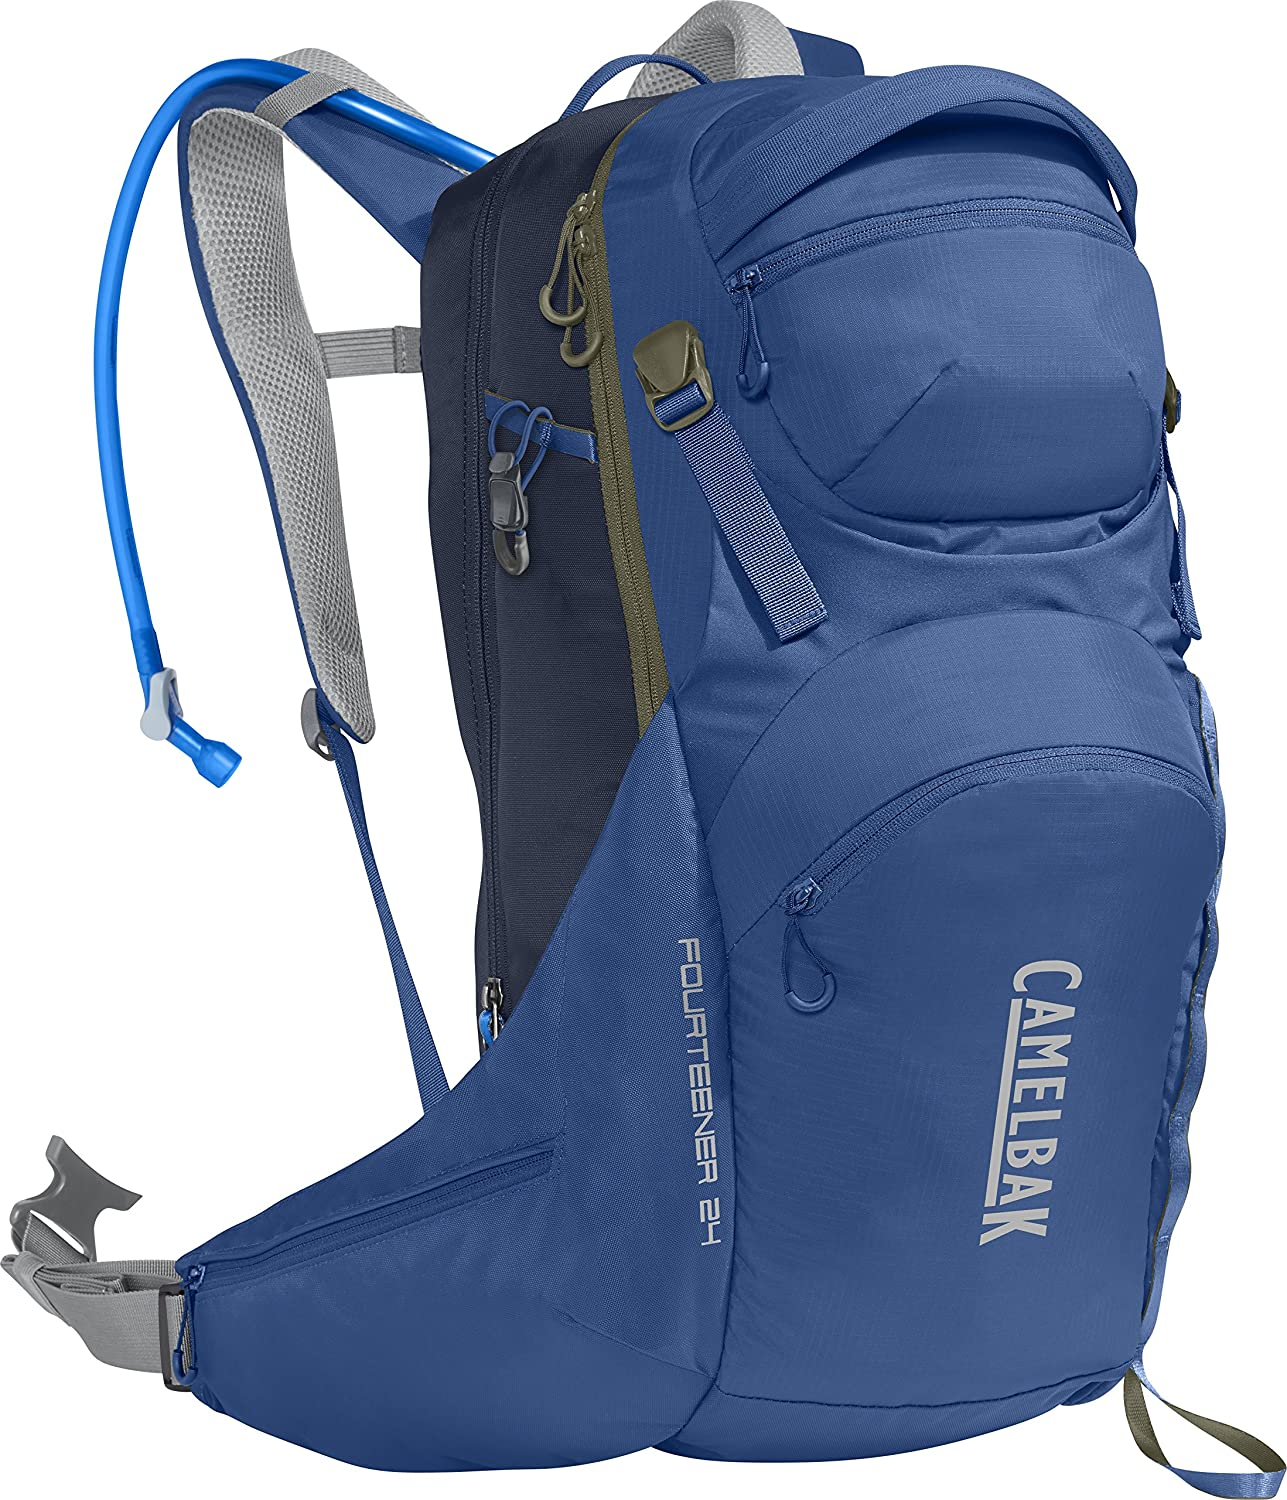 CamelBak Fourteener Black Friday Deals 2019